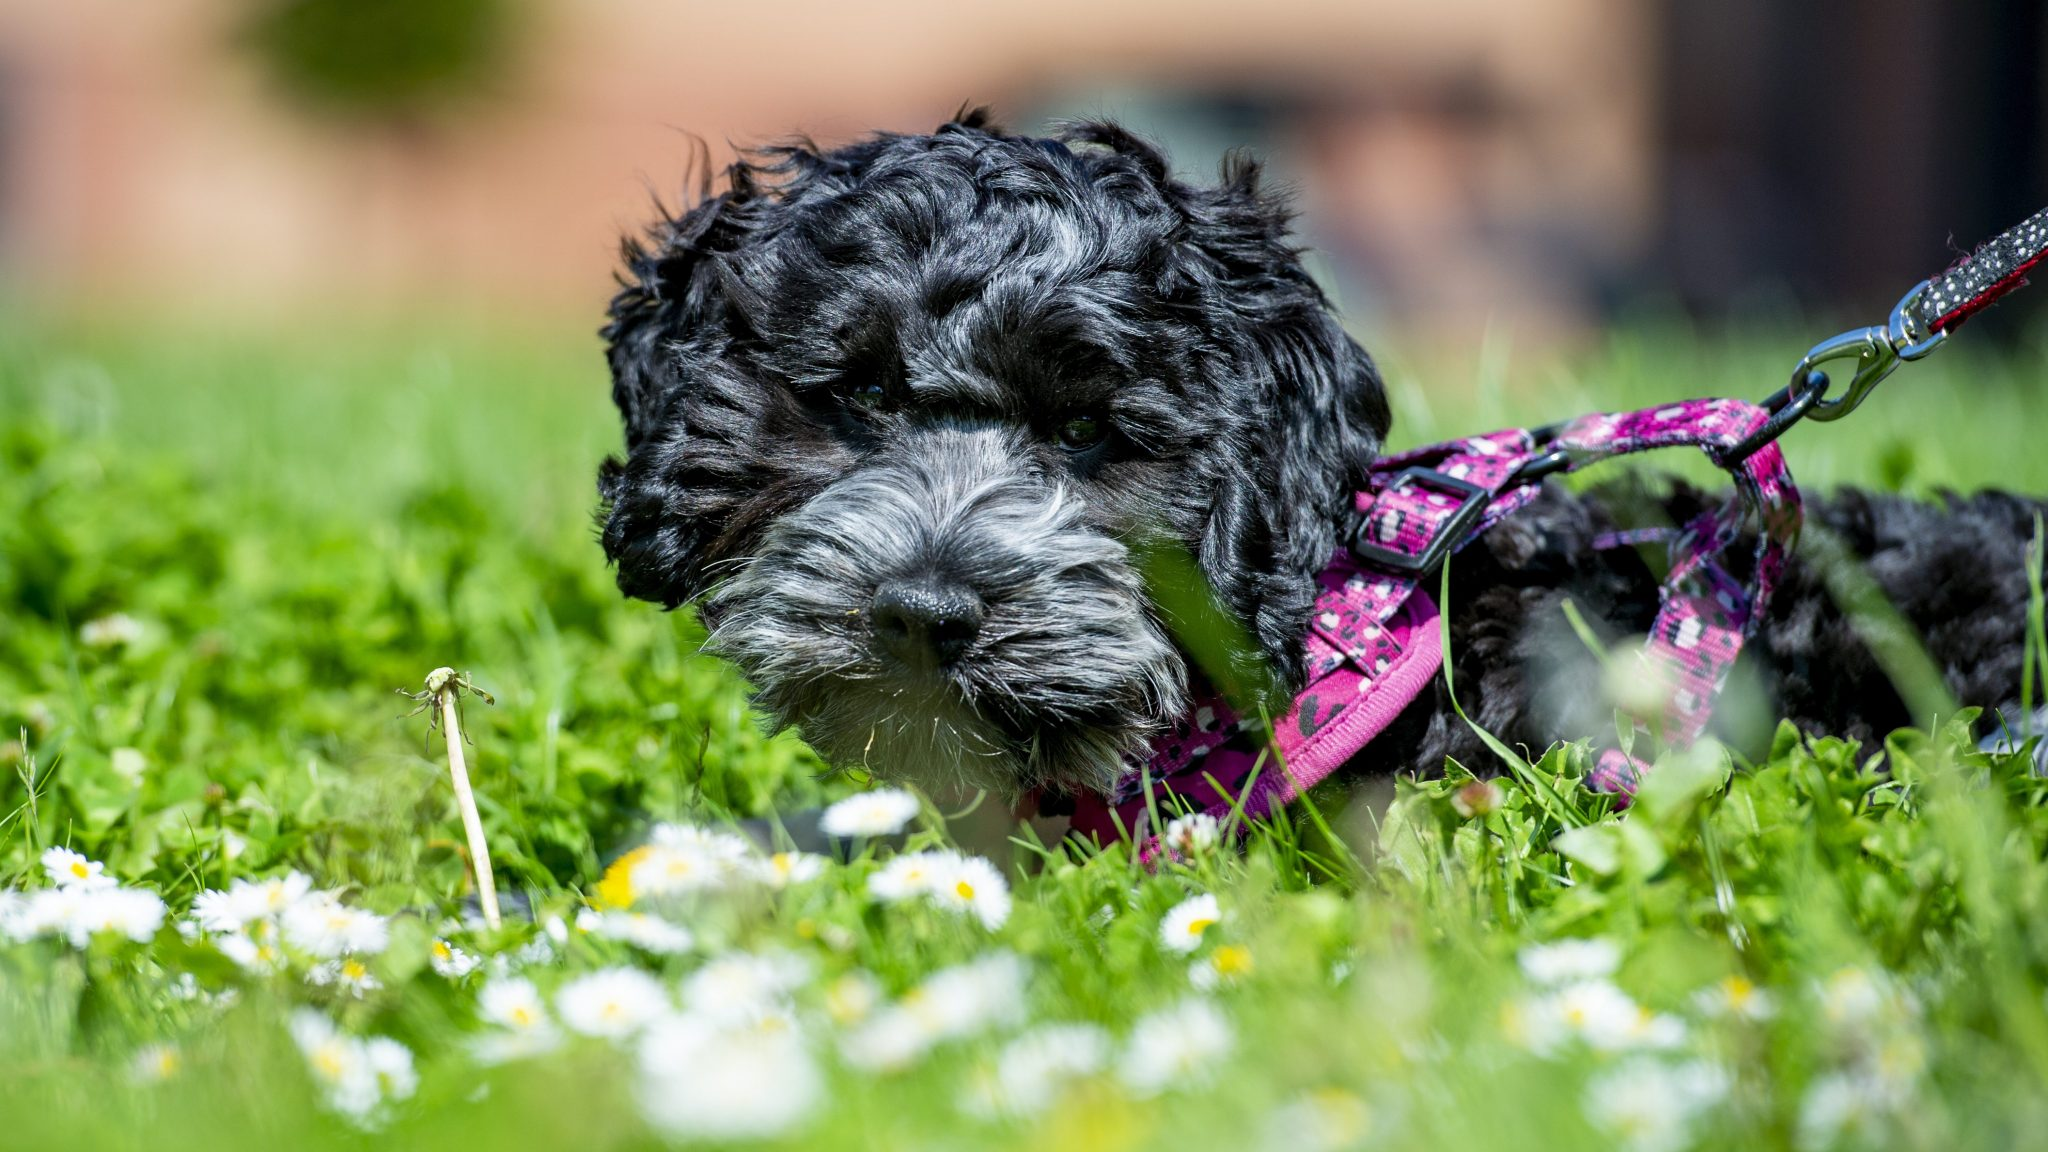 Mylie our therapy dog in the grass